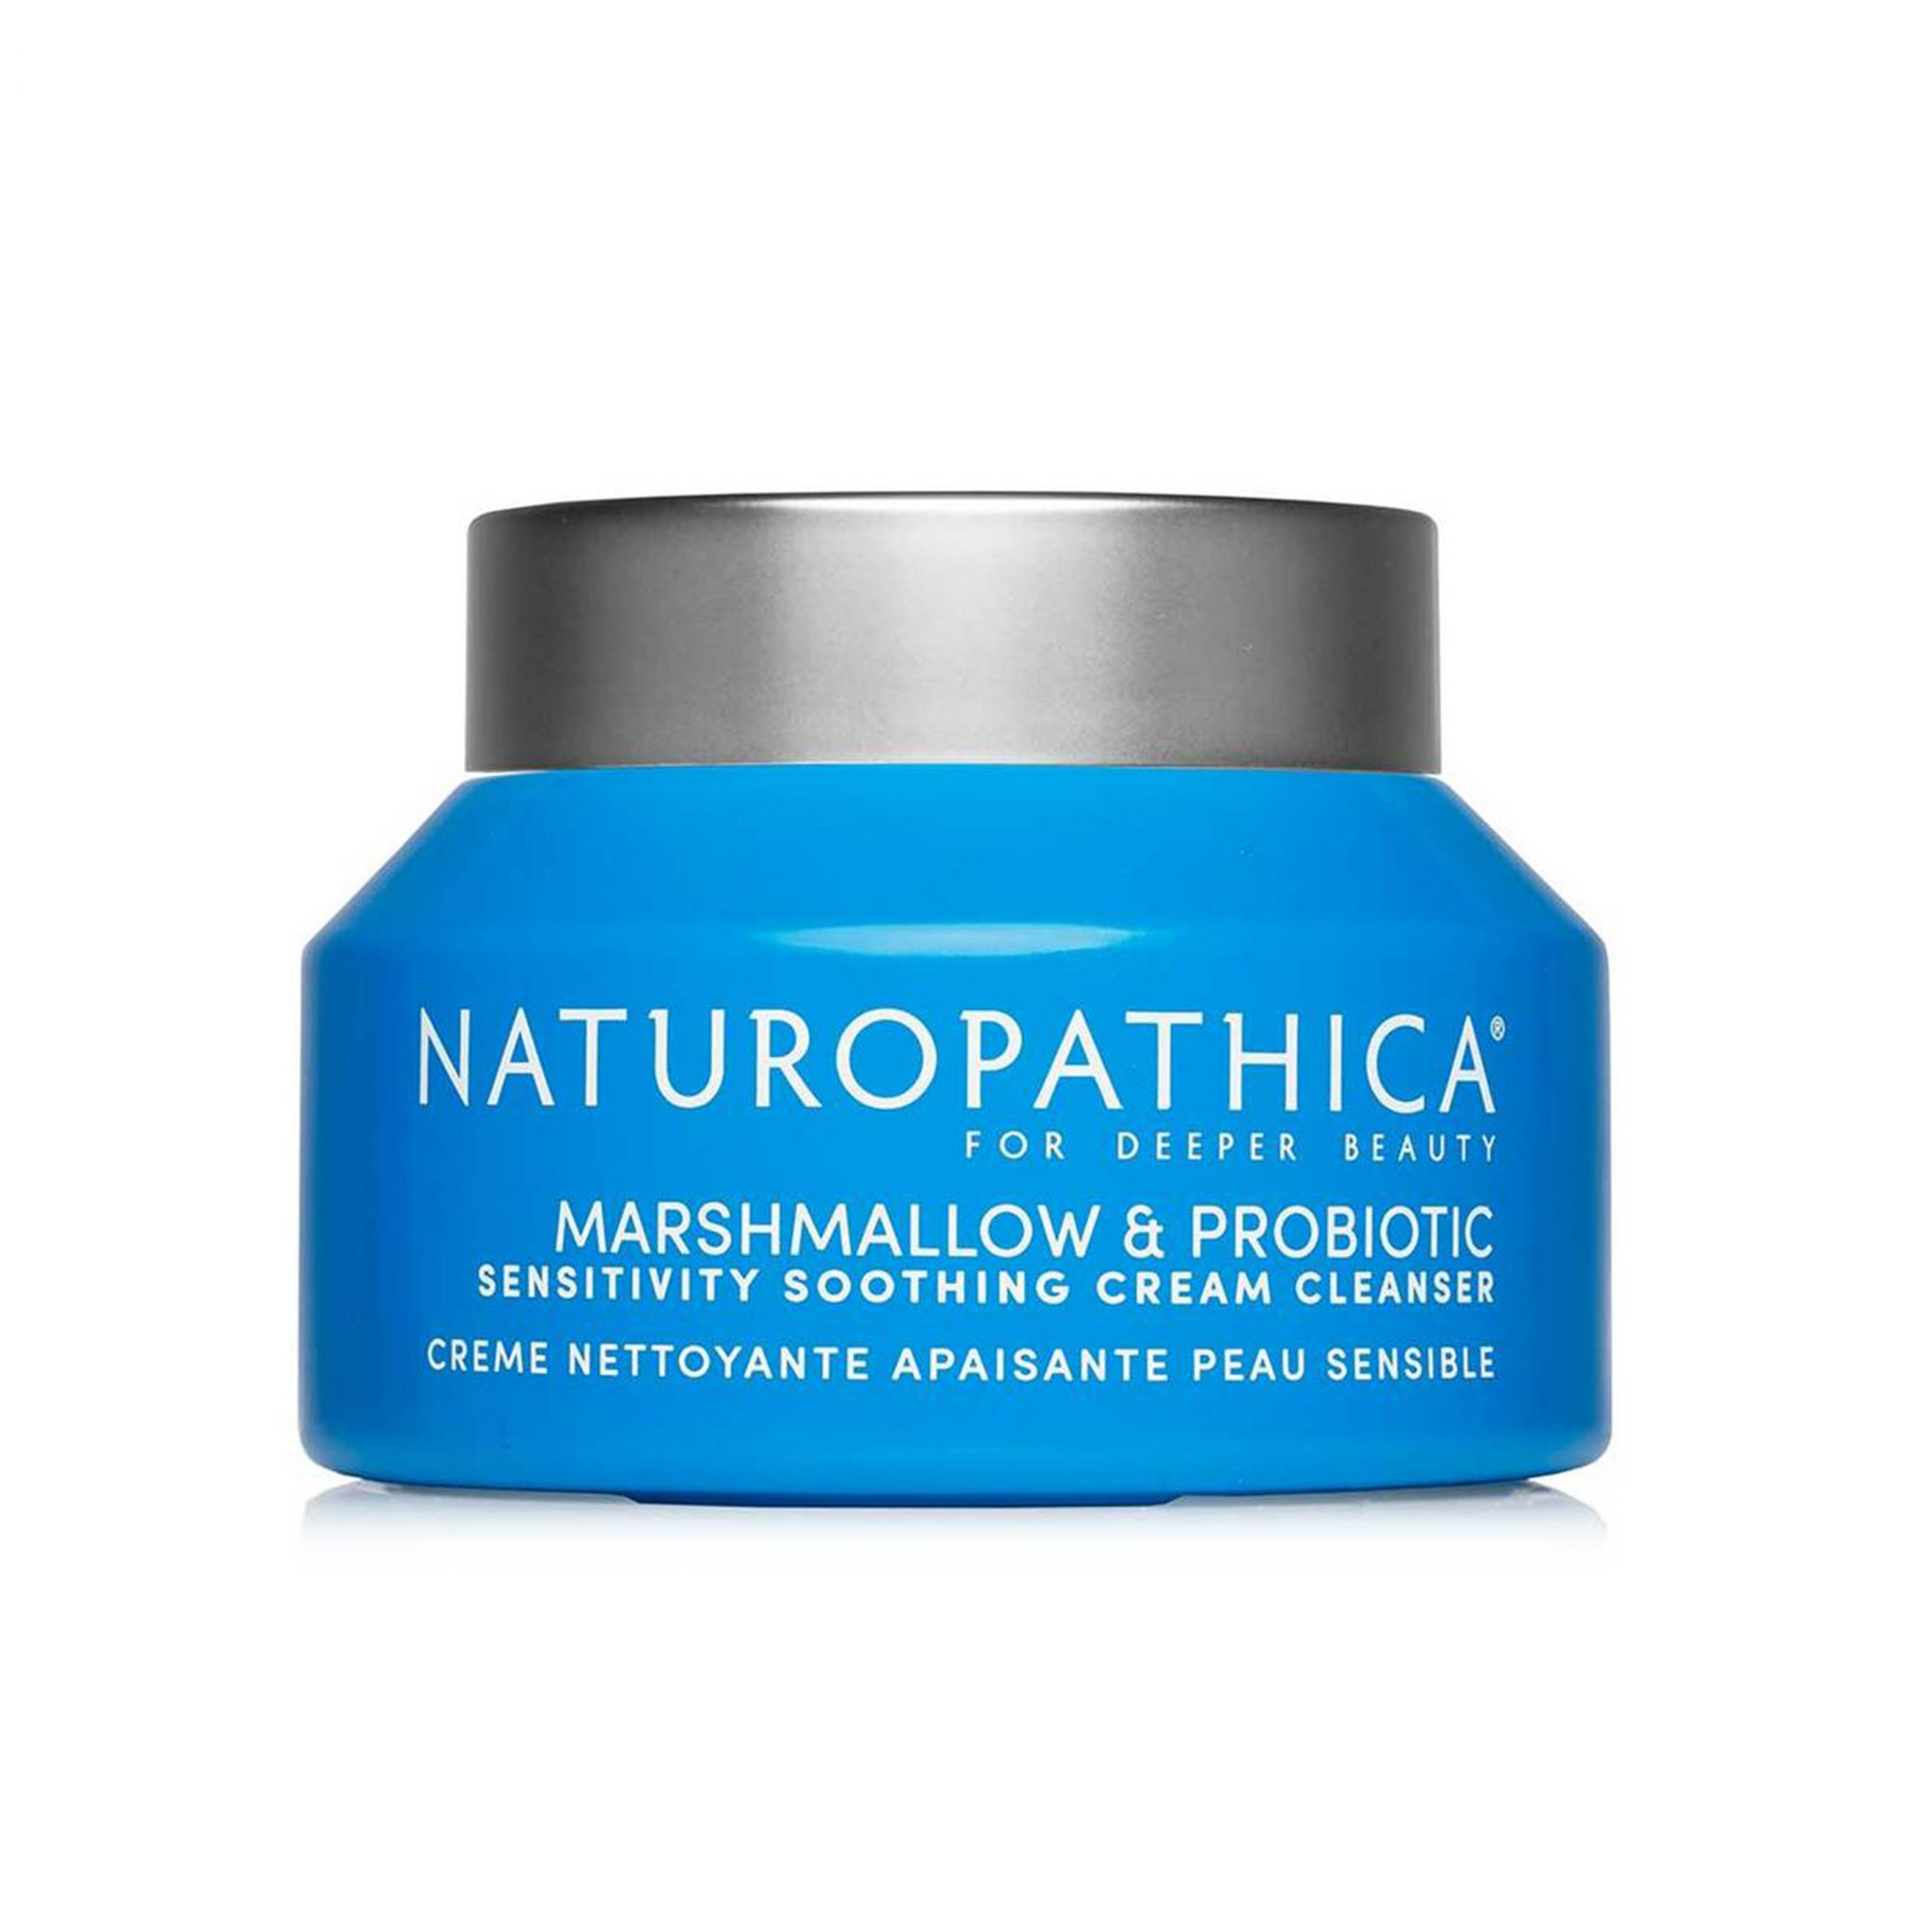 Beauty-Awards-Skin-Naturopathica-Marshmallow-Probiotic-Sensitivity-Soothing-Cream-Cleanser